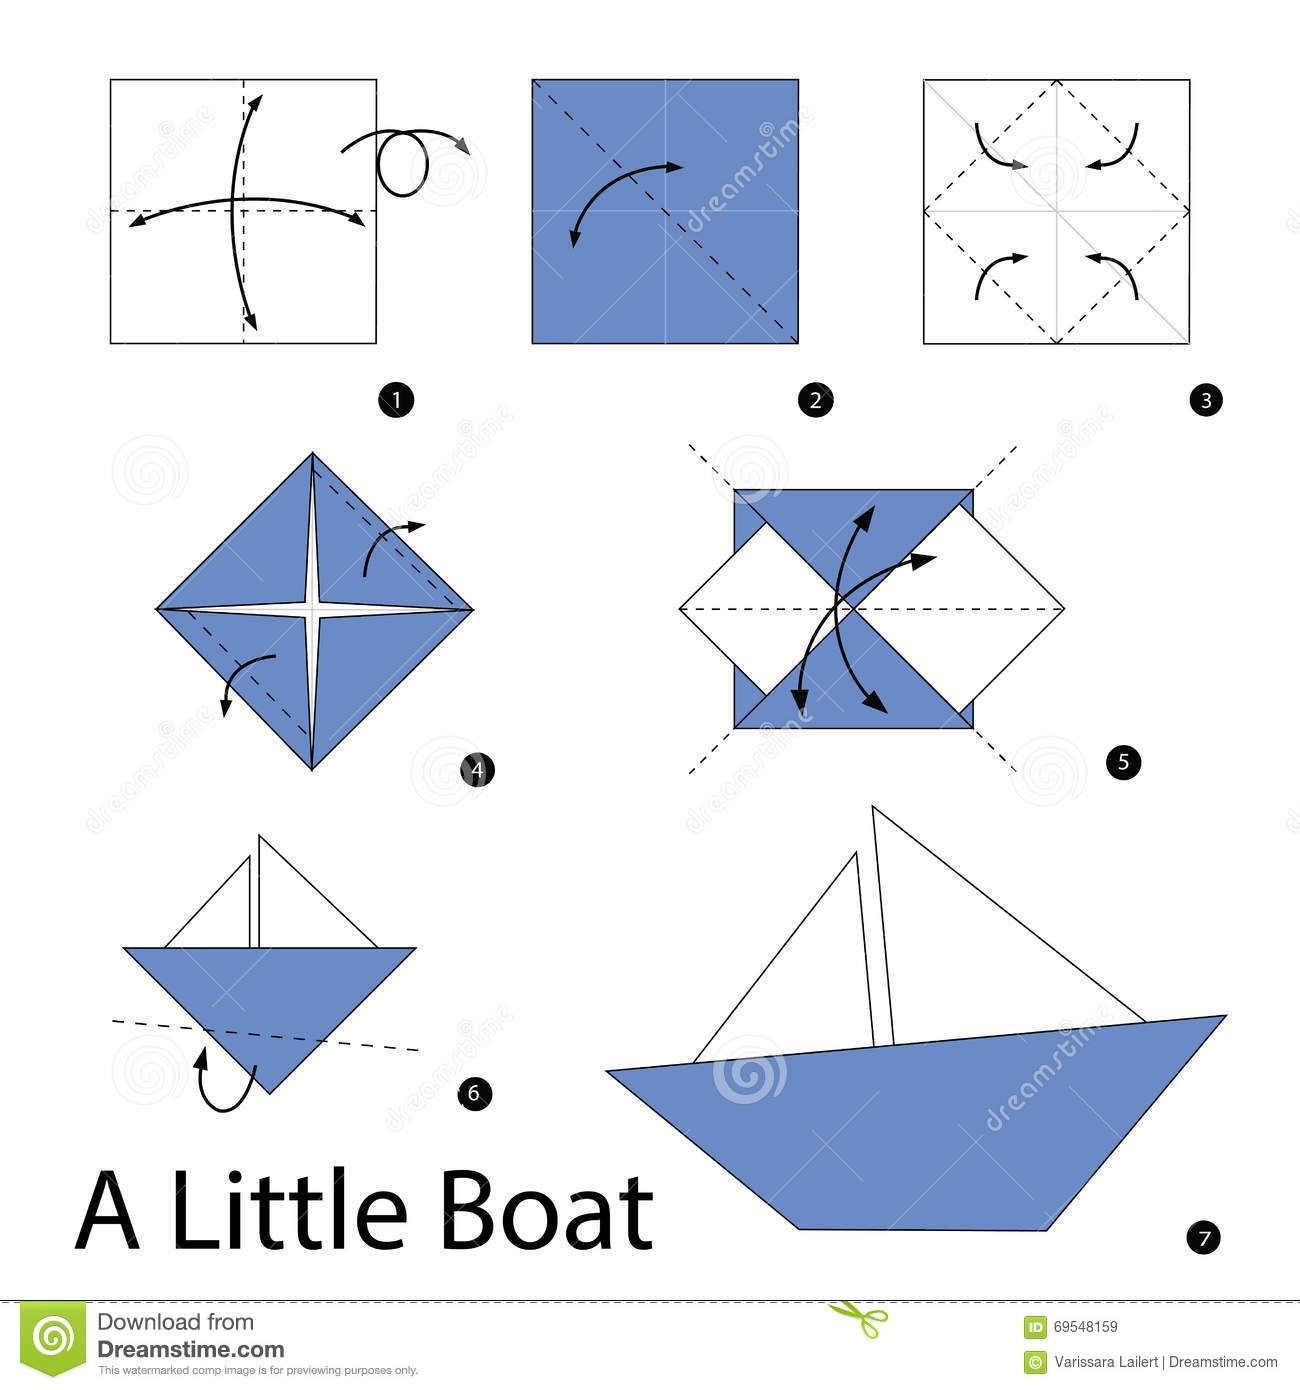 instructions  u00e9tape-par- u00e9tape comment faire  u00e0 origami un bateau